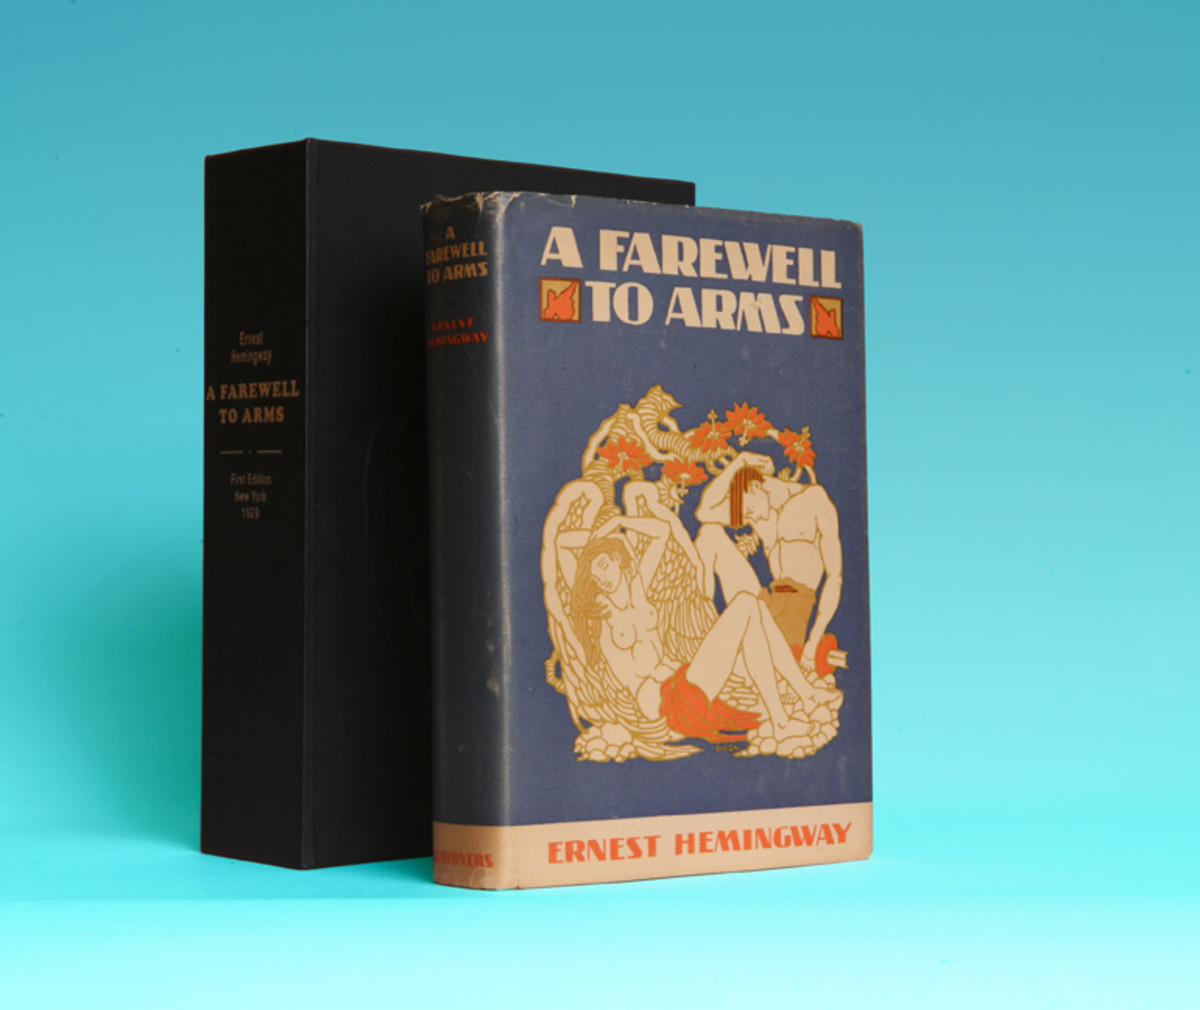 symbolism and foreshadowing in a farewell to arms by ernest hemingway